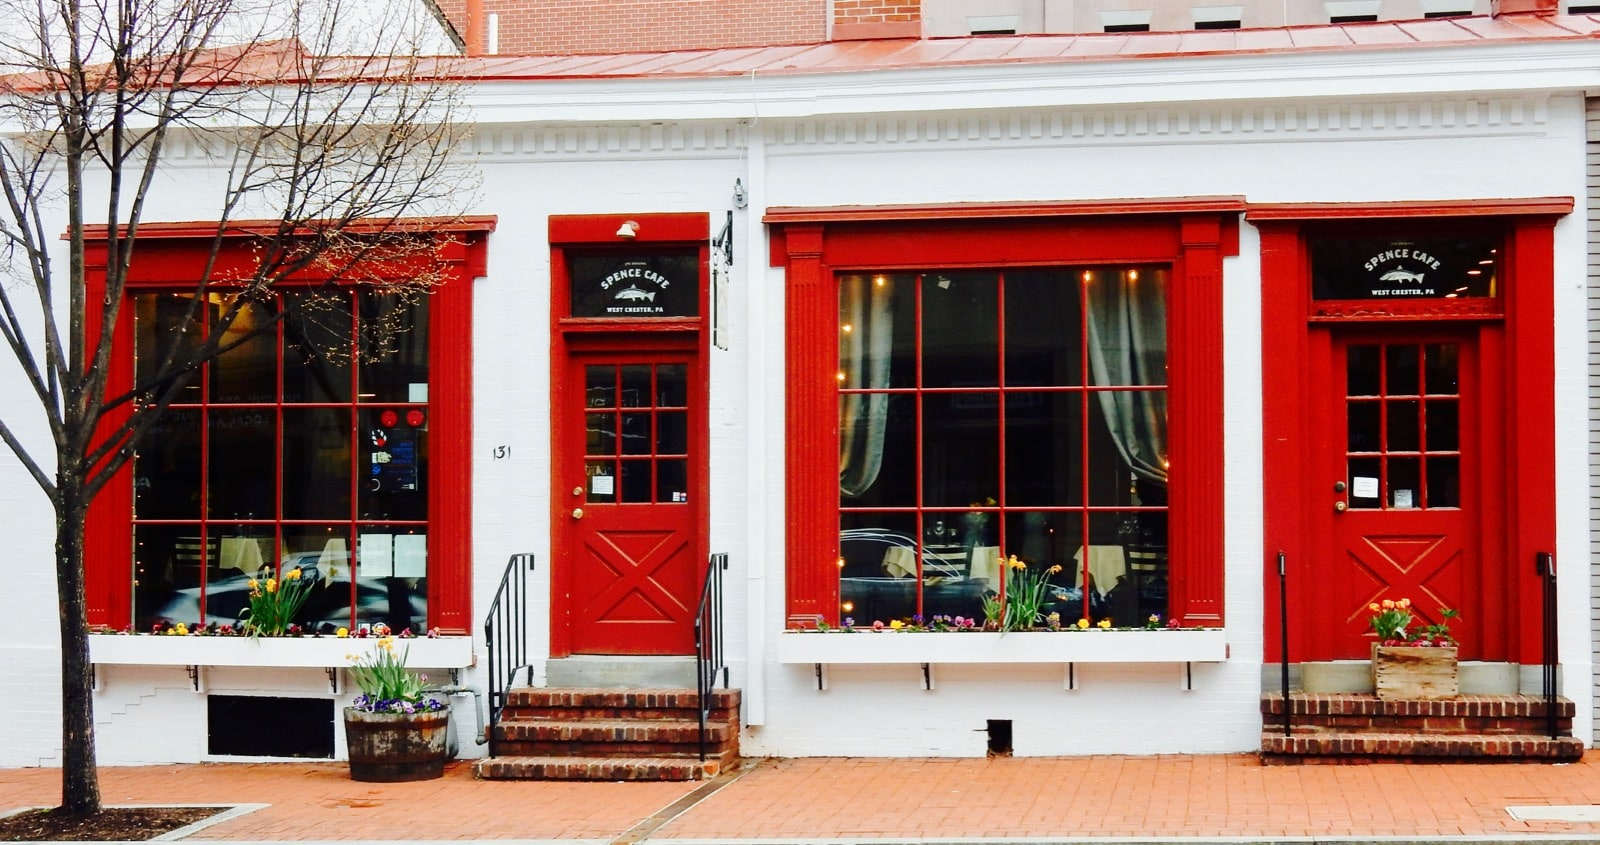 Spence Cafe West Chester PA